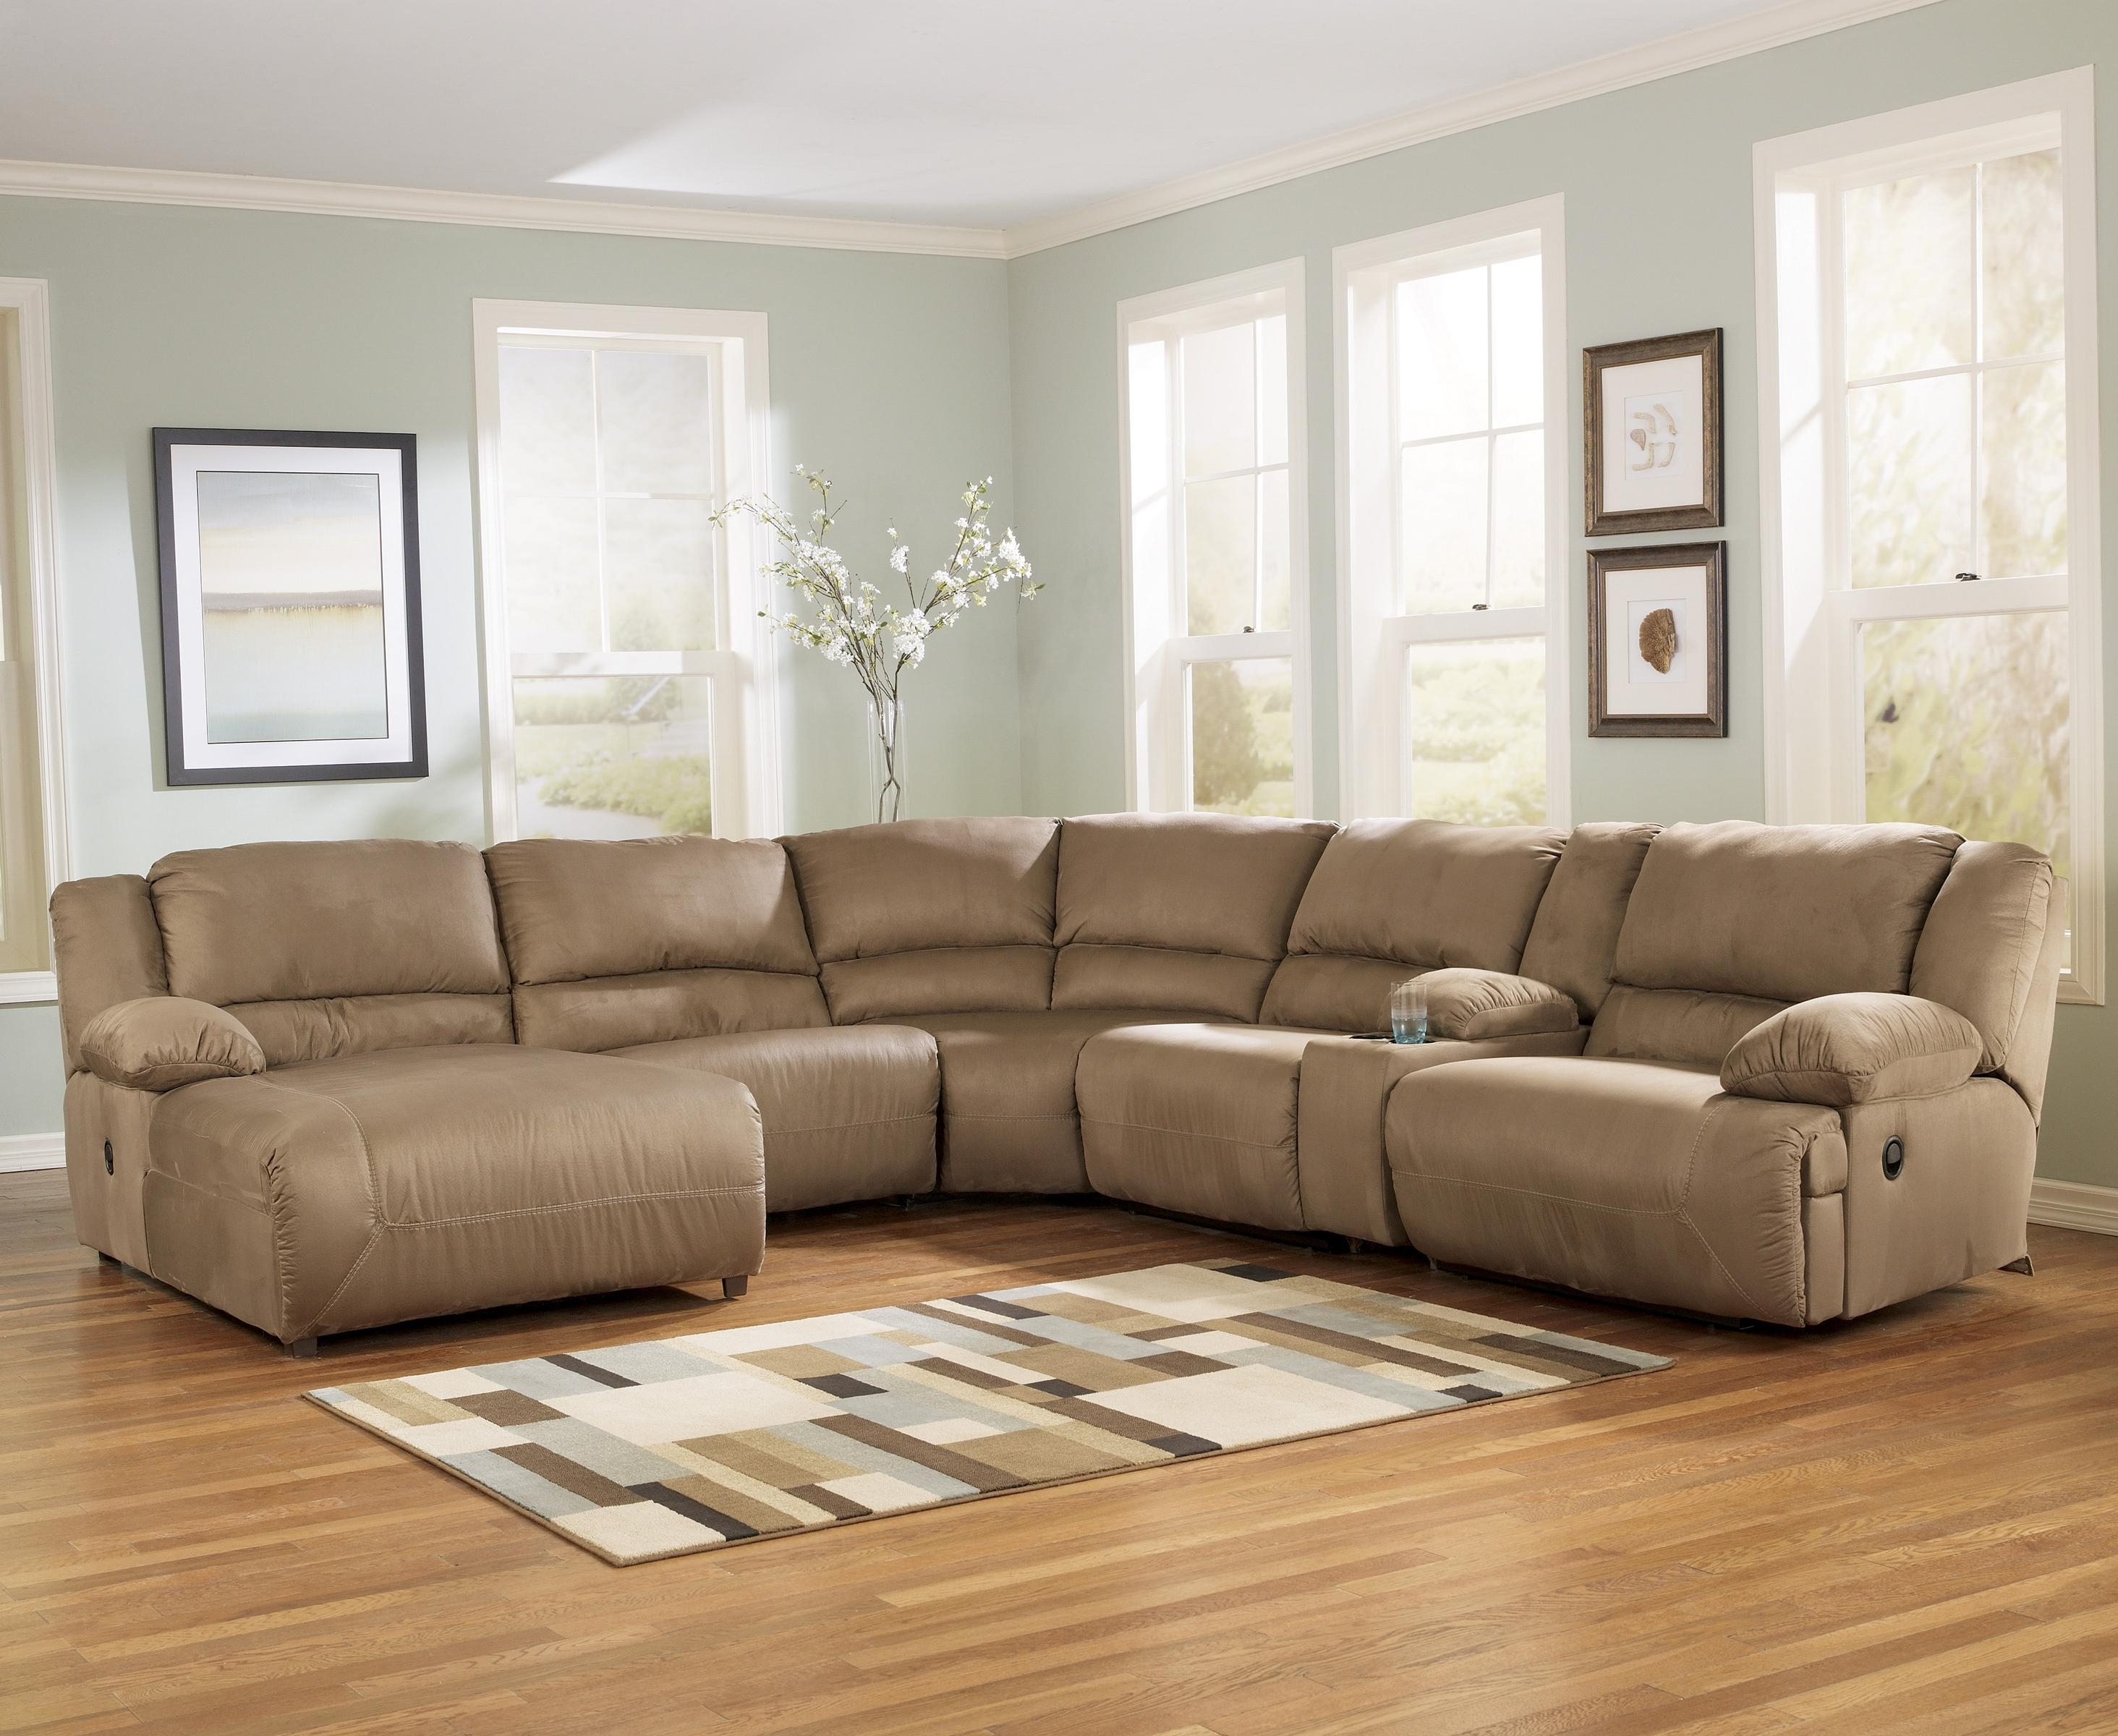 Sectional Sofas At Birmingham Al Within Well Liked Signature Designashley Hogan – Mocha 6 Piece Motion Sectional (View 16 of 20)